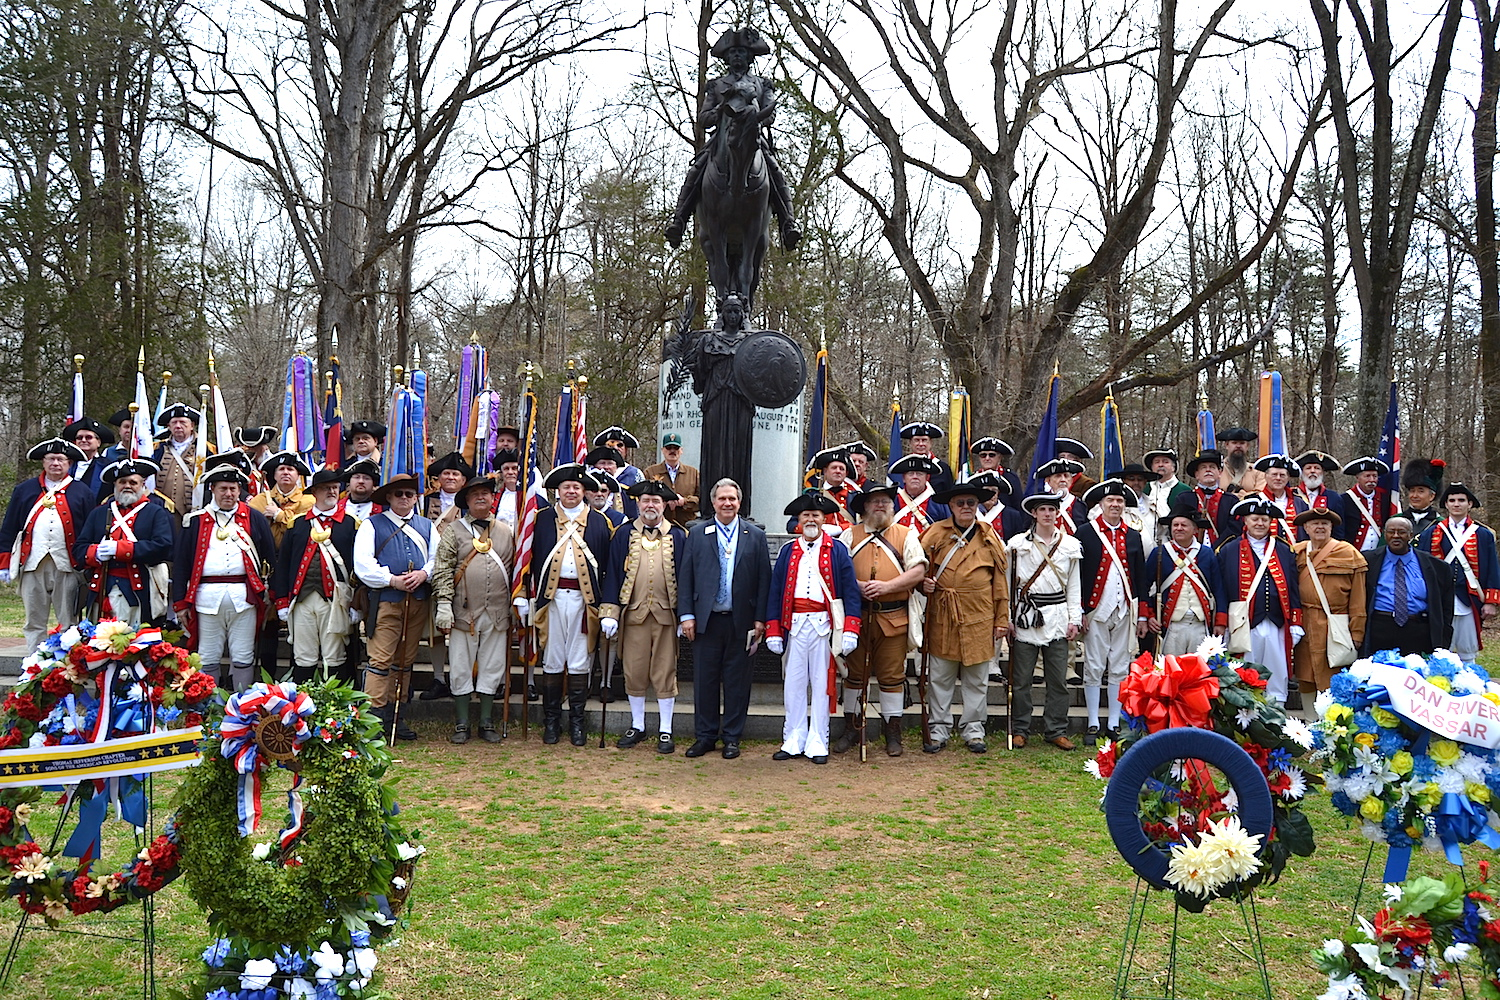 The National SAR gathers for a photo following the ceremony.